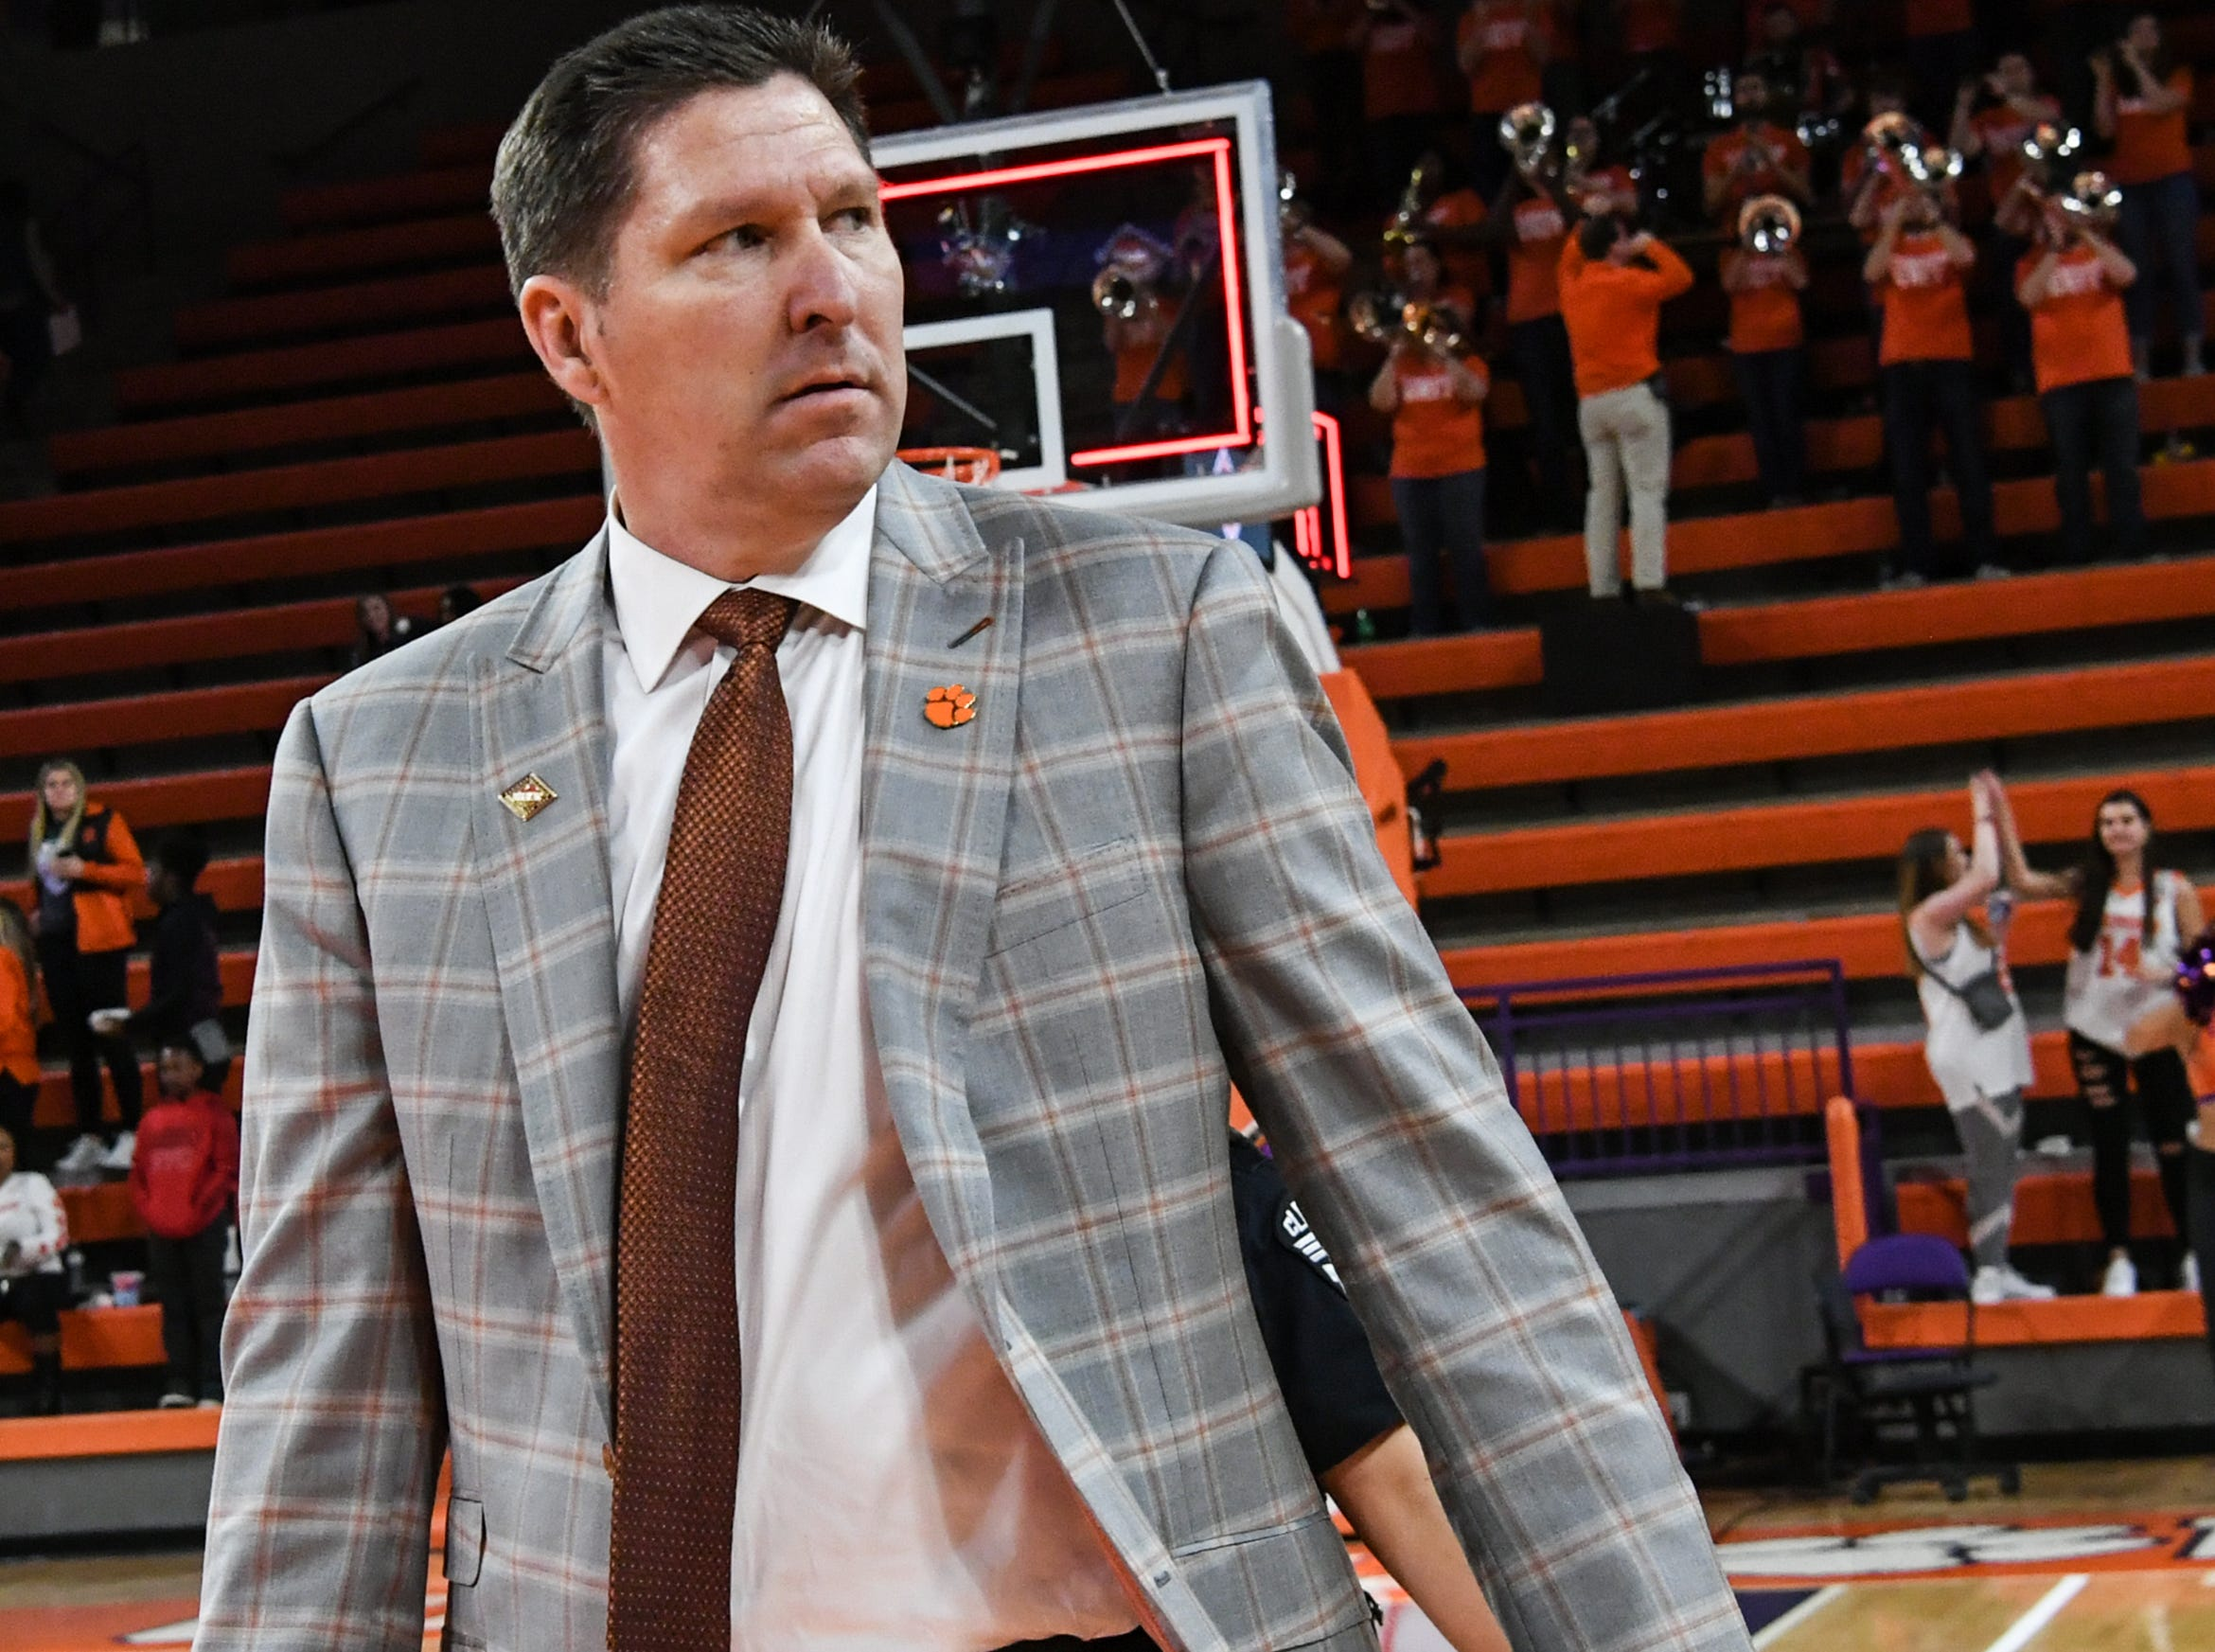 Clemson head coach Brad Brownell  after a 75-69 win in the NIT at Littlejohn Coliseum in Clemson Tuesday, March 19, 2019.